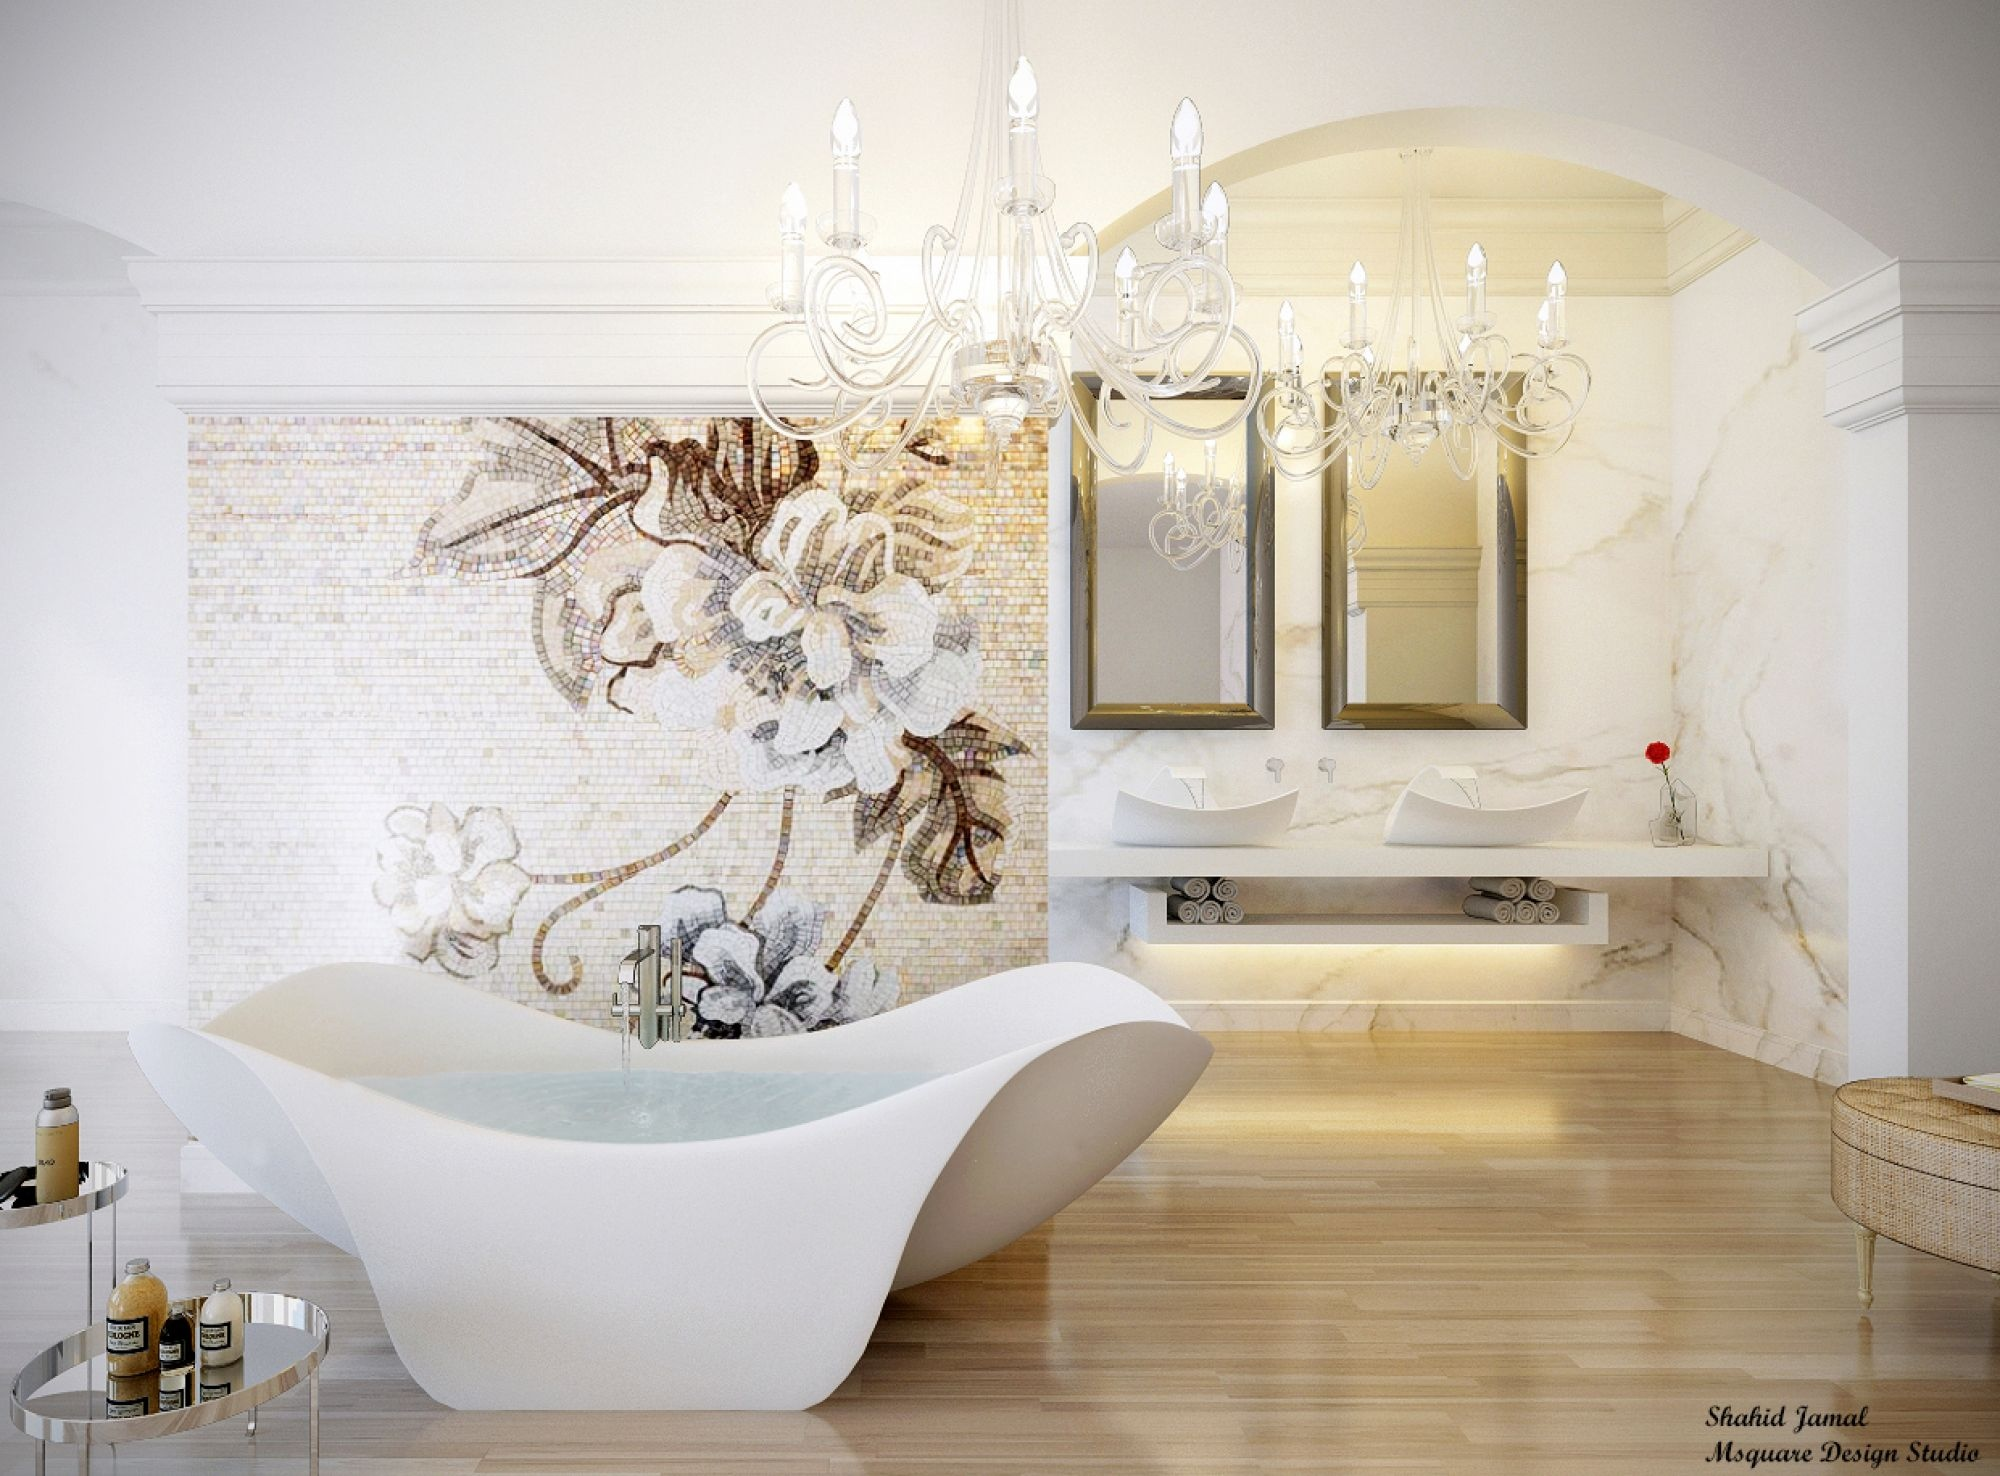 Ultra luxury bathroom inspiration for New bathroom ideas 2016